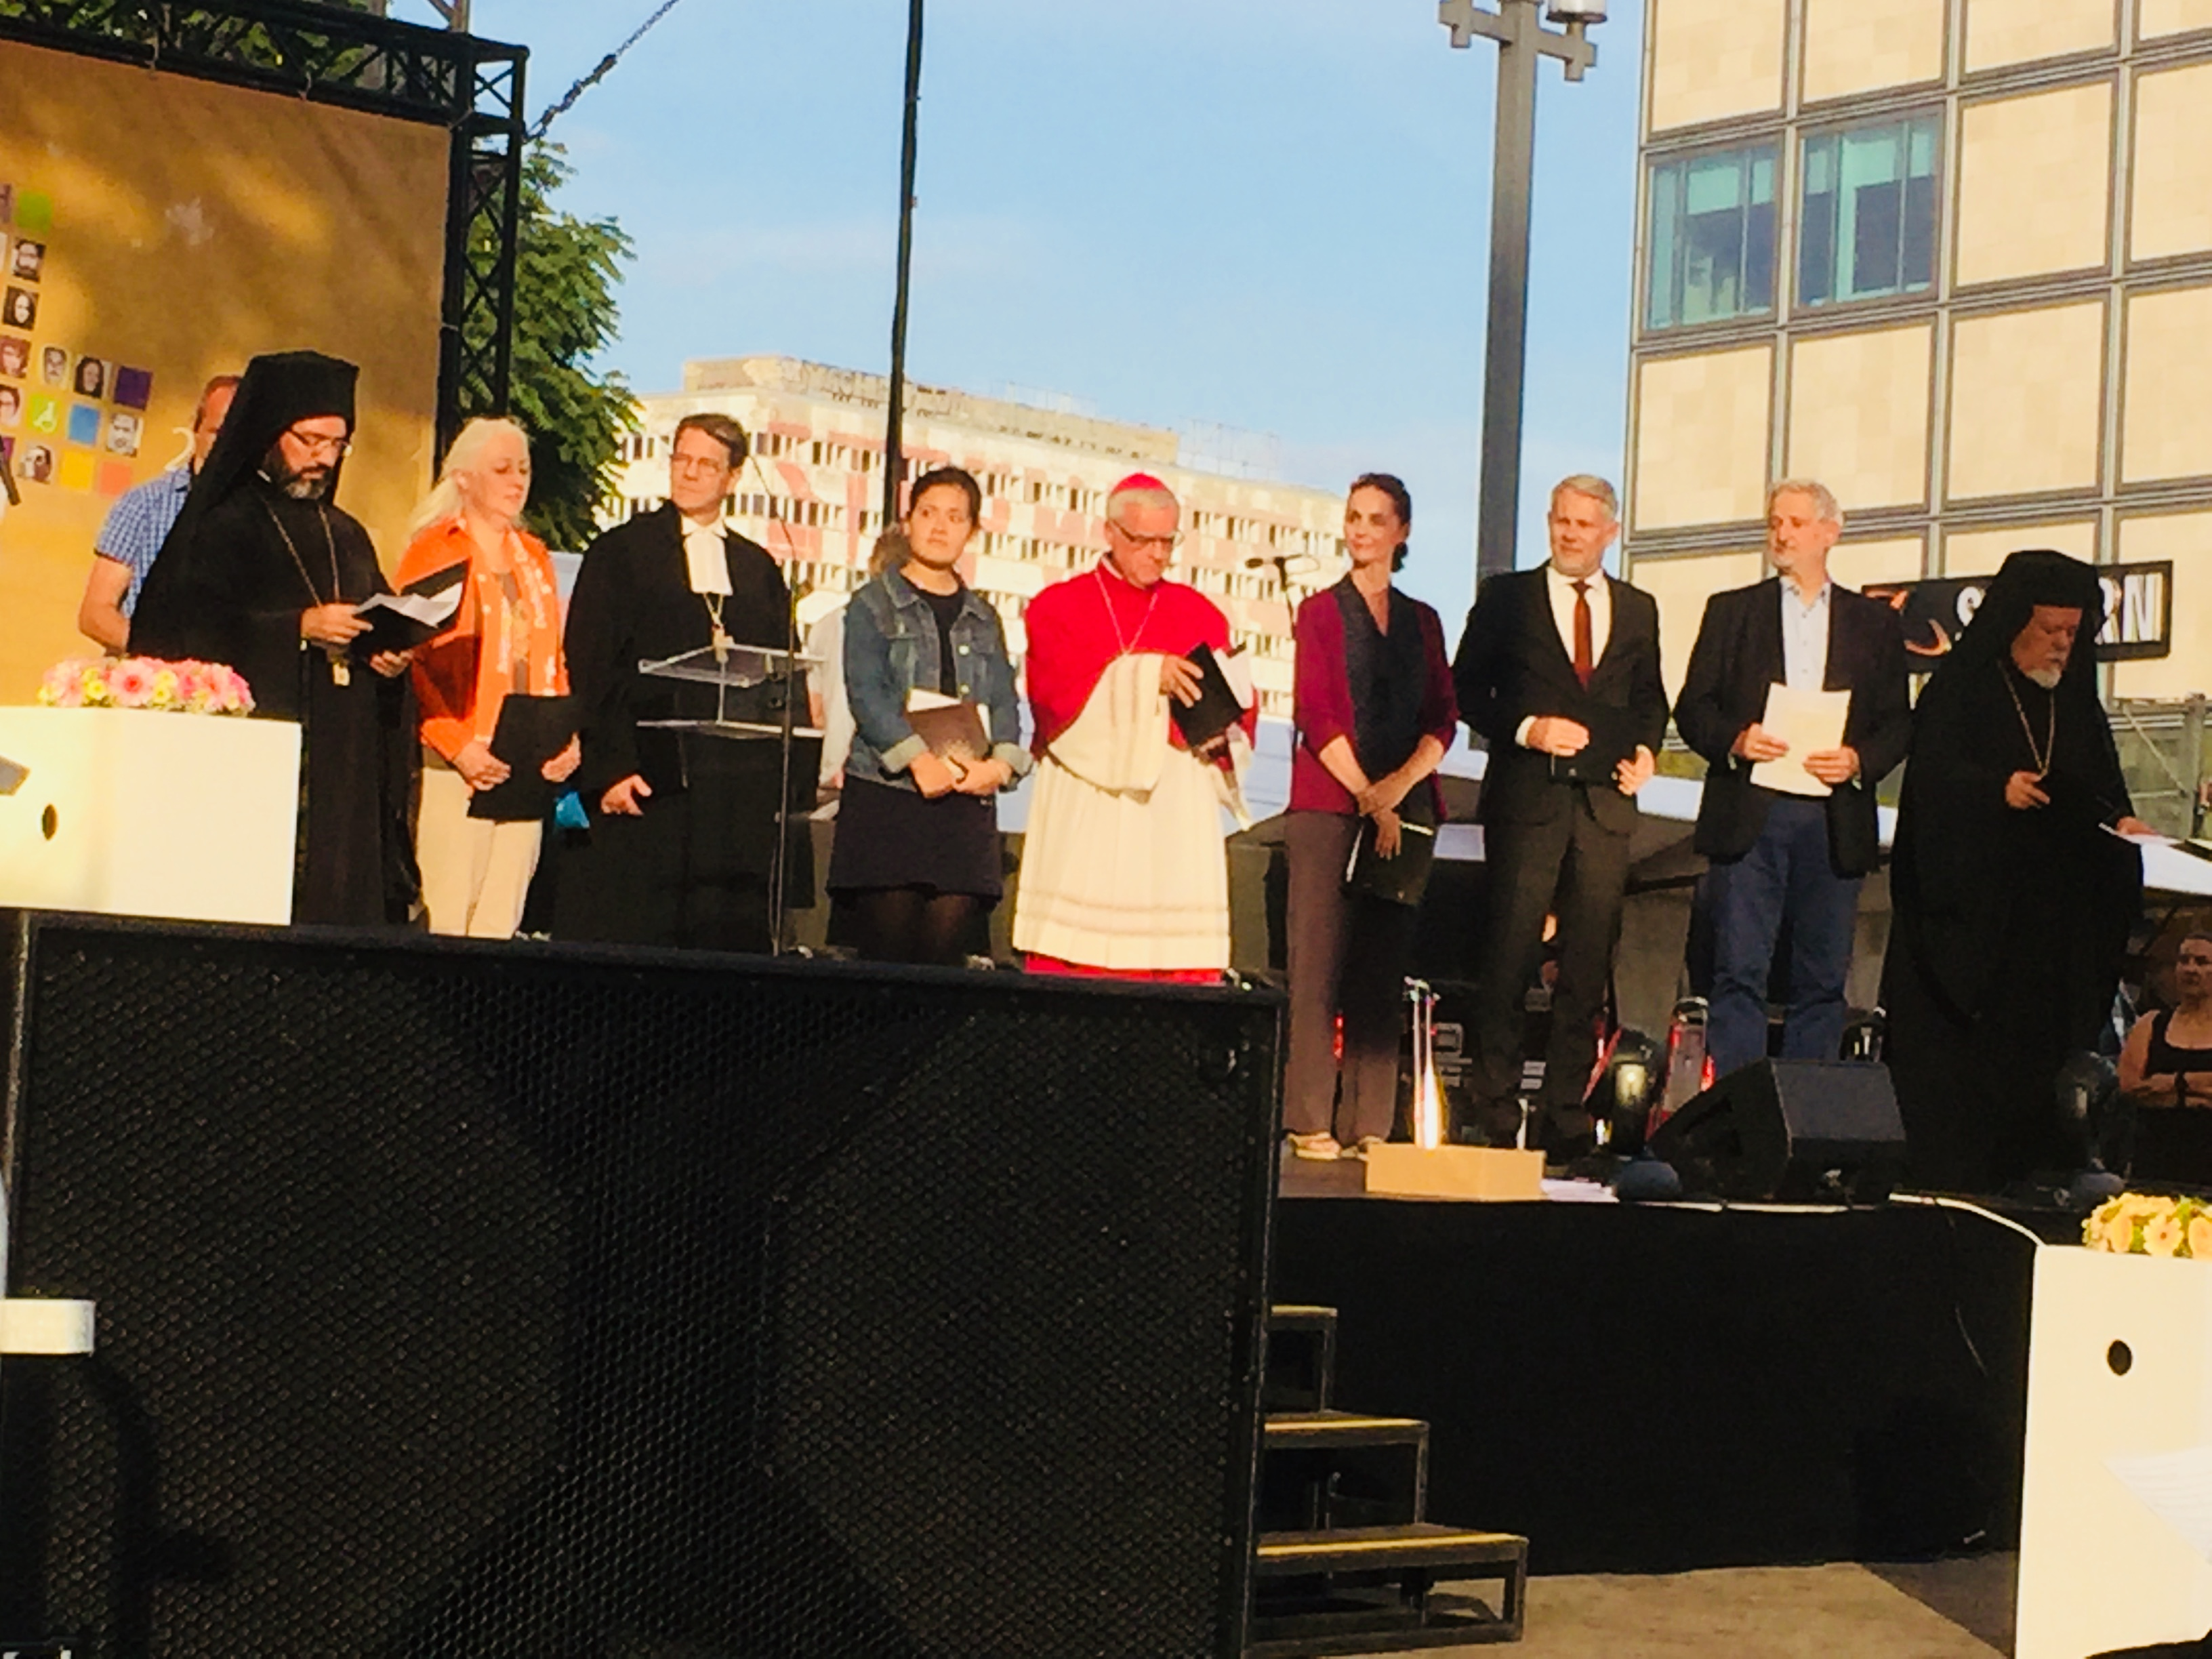 Leaders of various Christian communities in Berlin opening the worship service at the Fest der Kirchen.